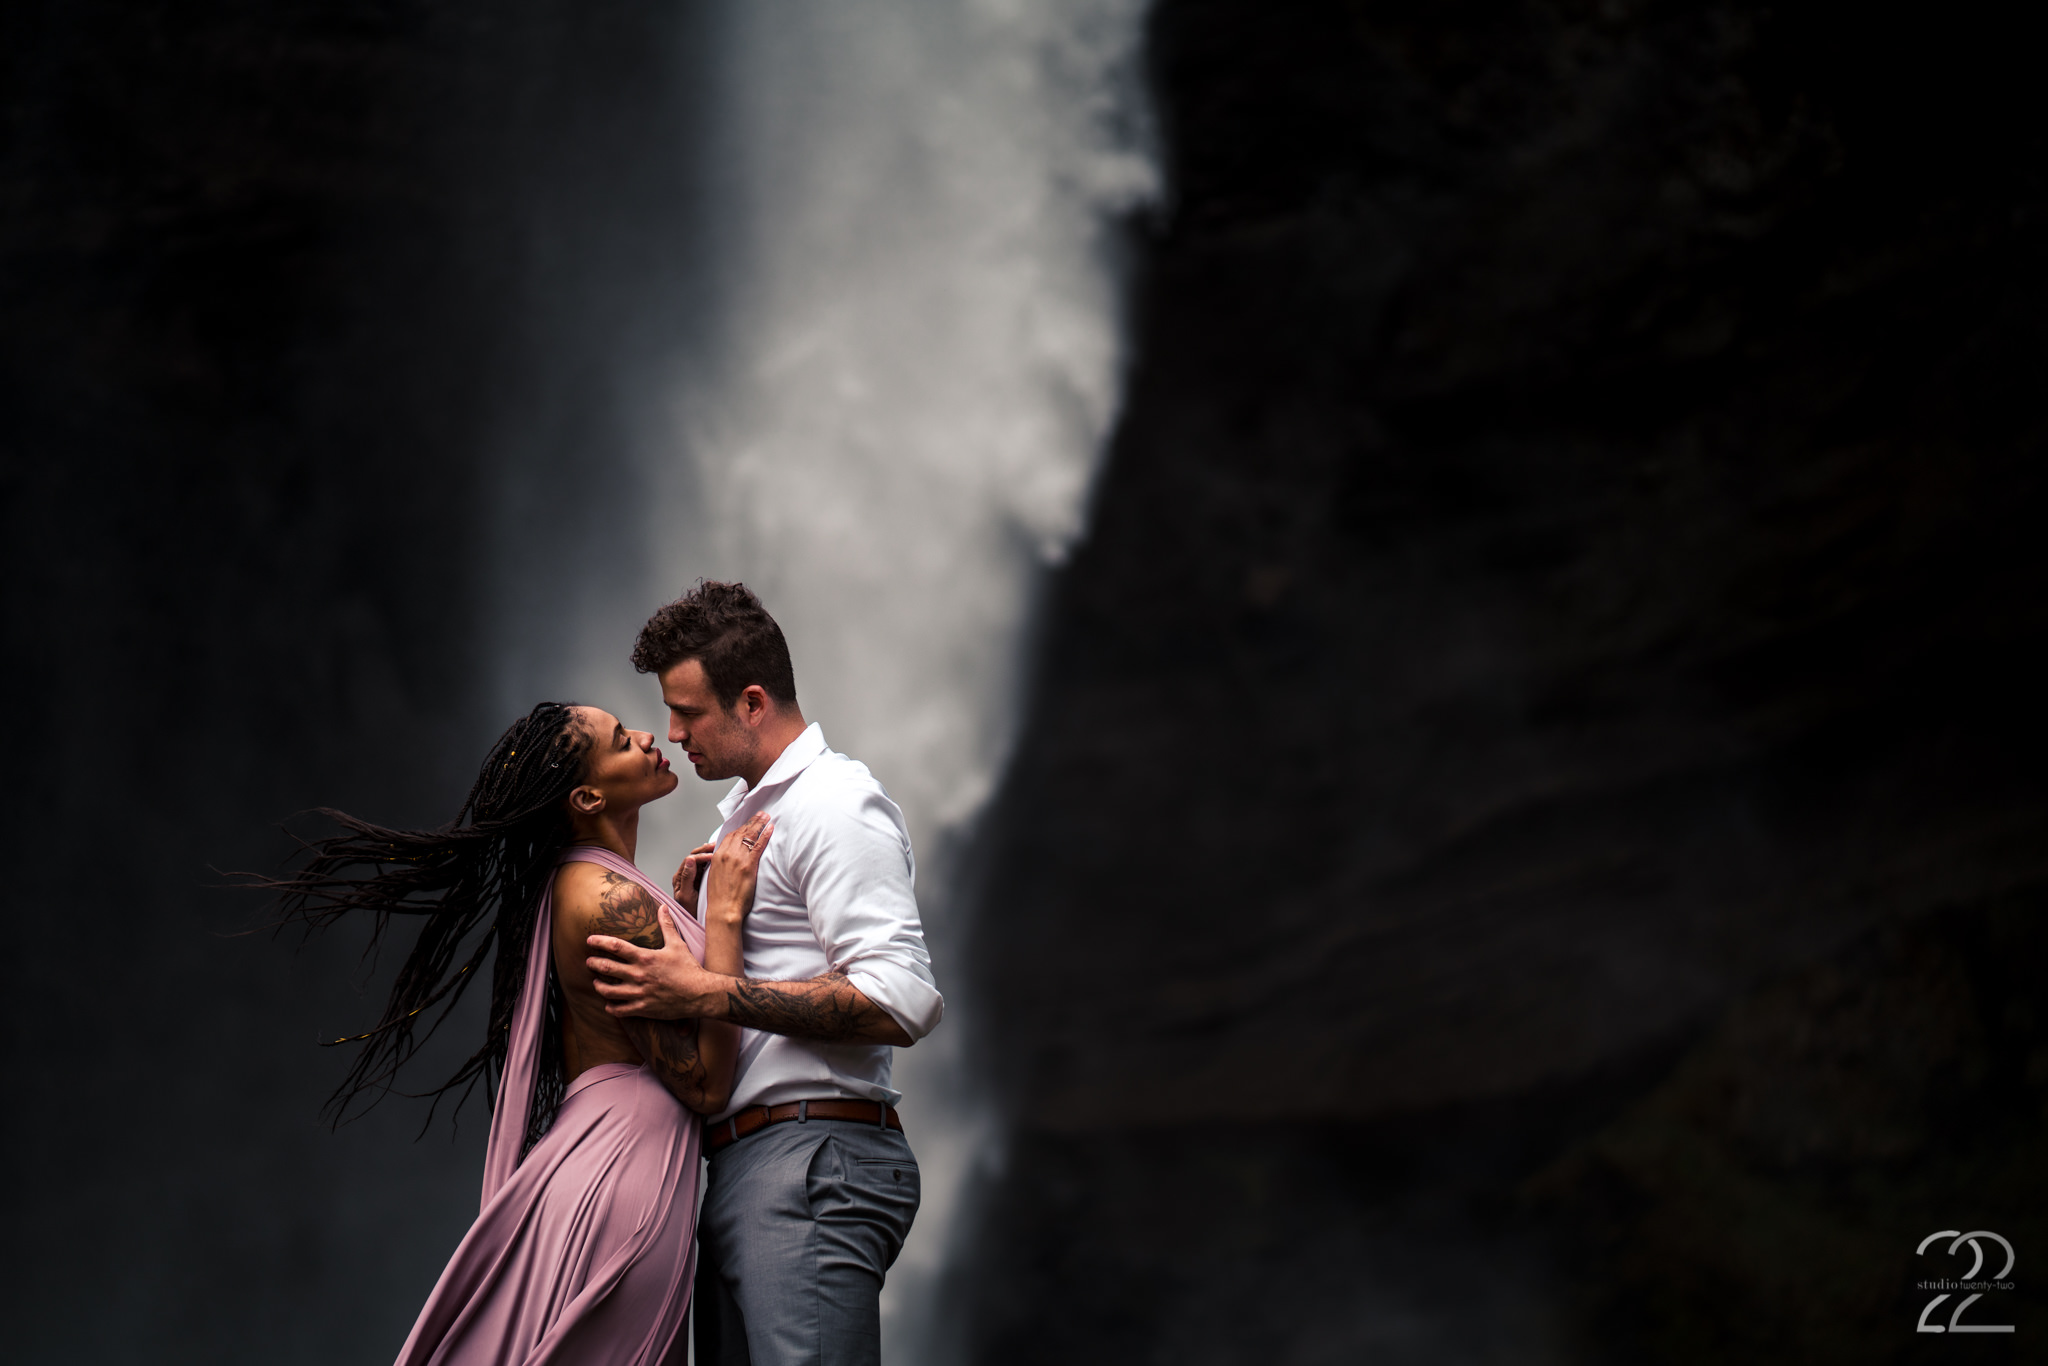 Studio 22 Photography - Iceland Engagement Photos - Kvernufoss Waterfall